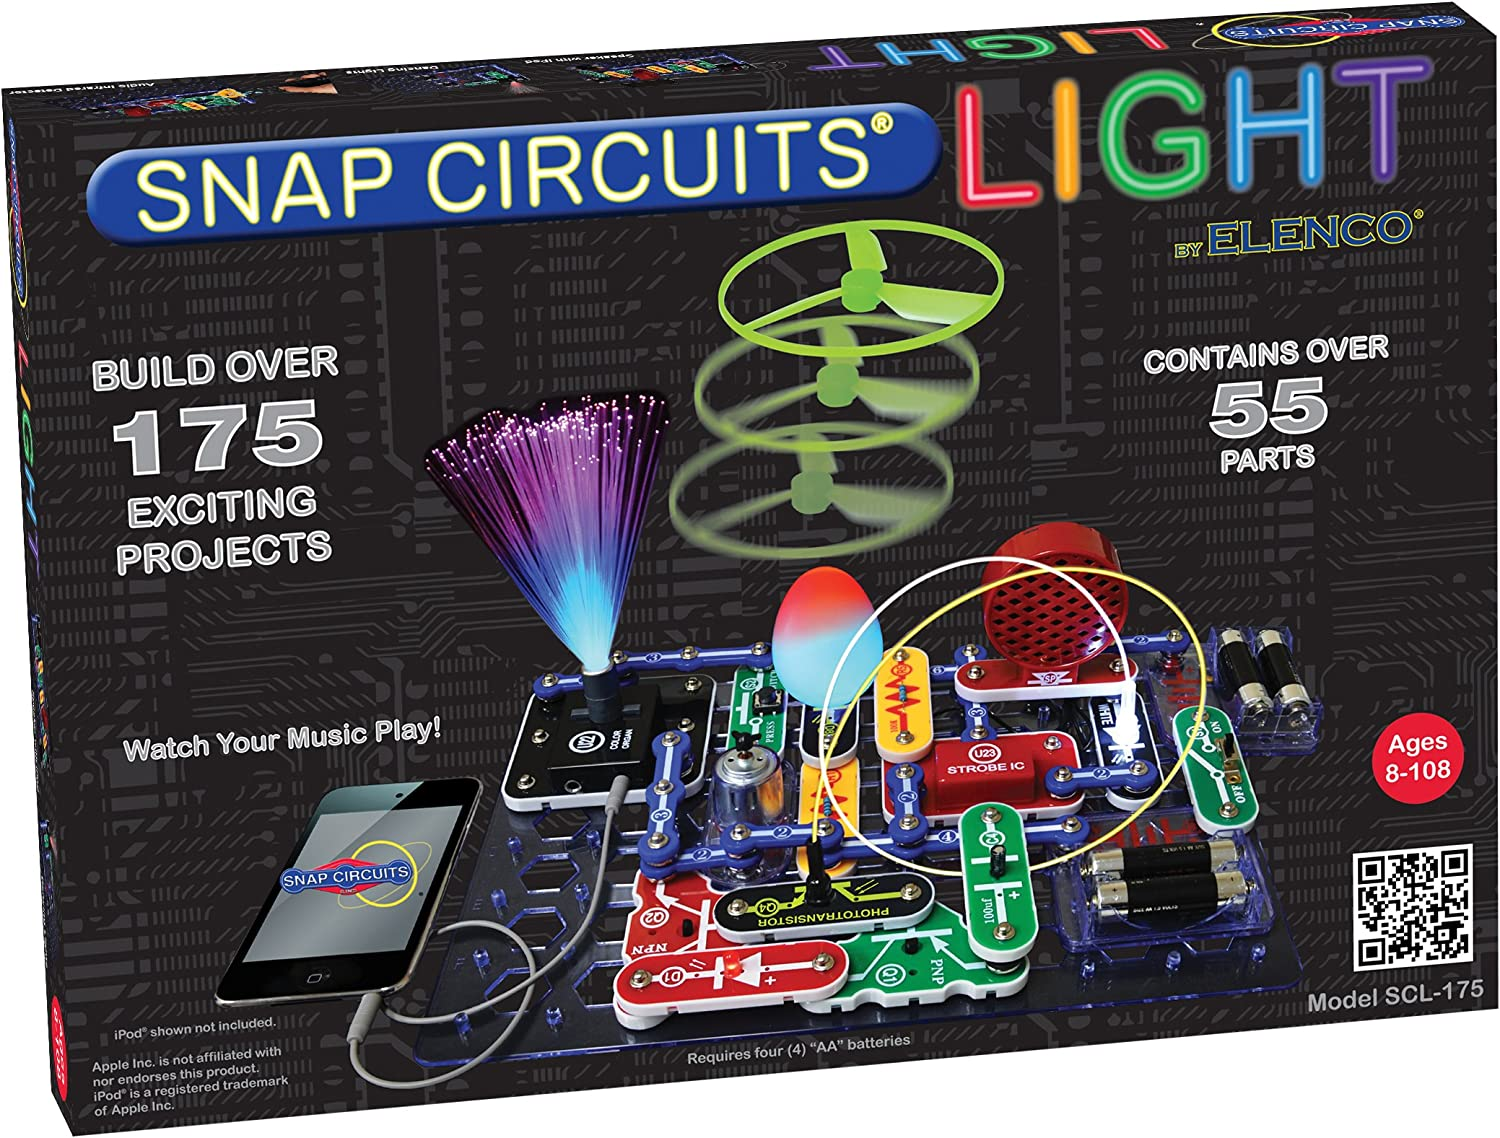 Snap Circuits LIGHT Electronics Exploration Kit